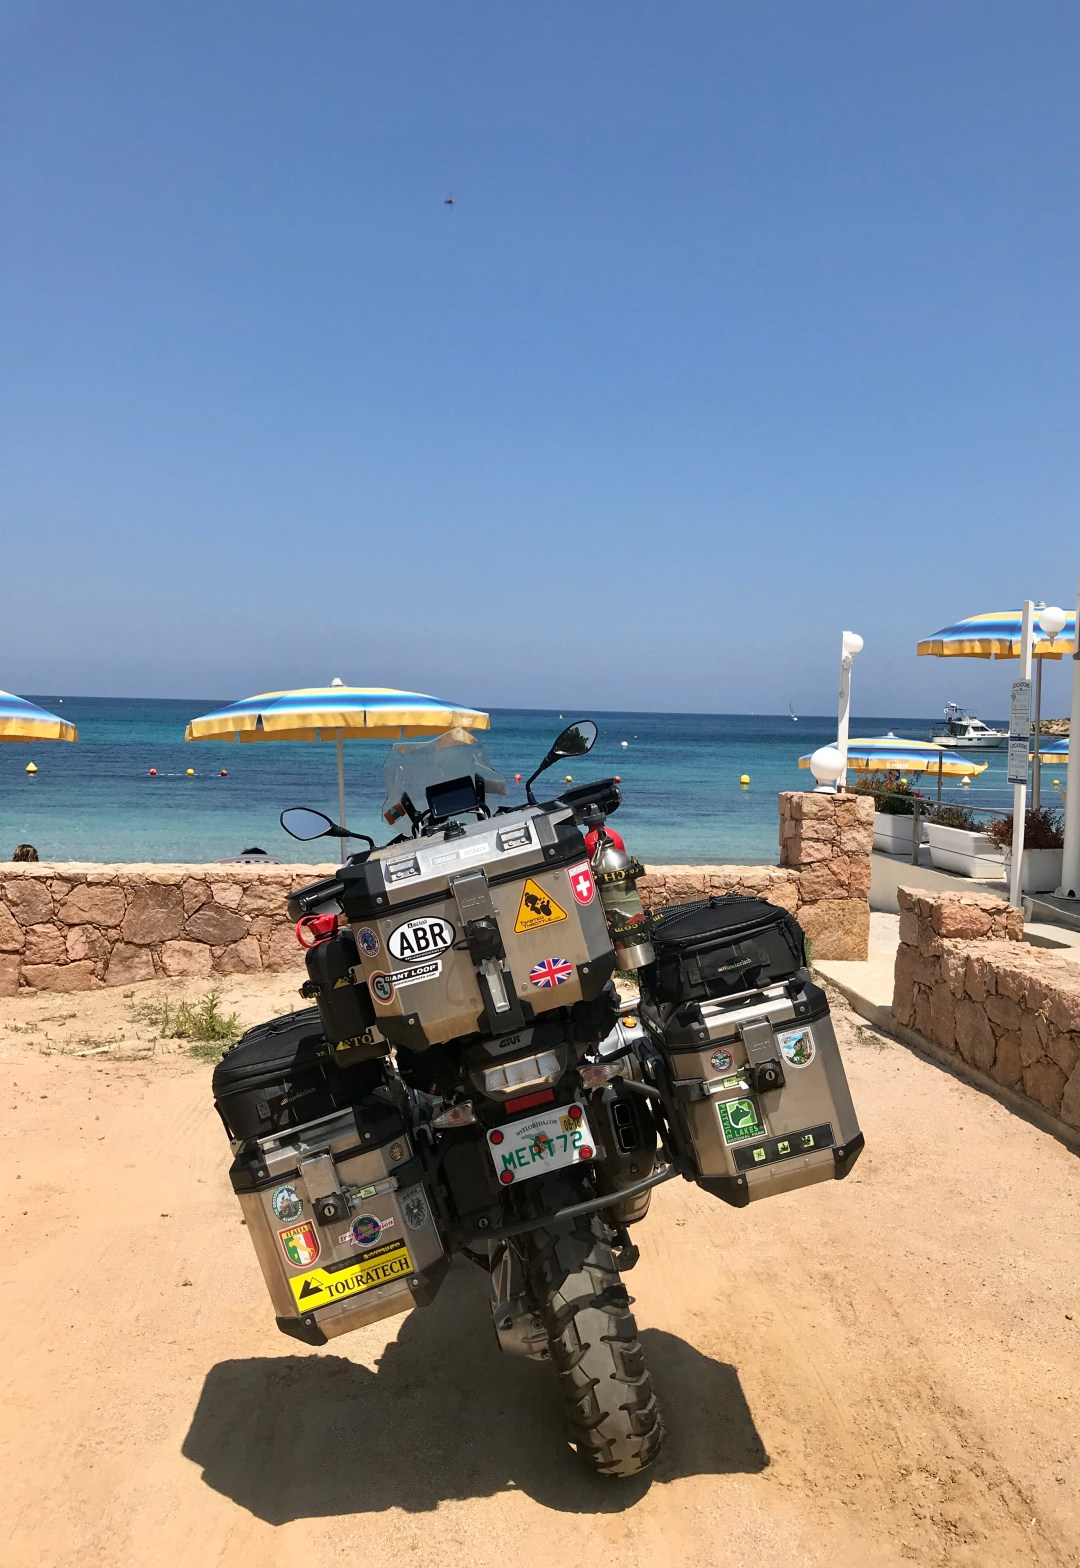 Corsica Motorcycle touring